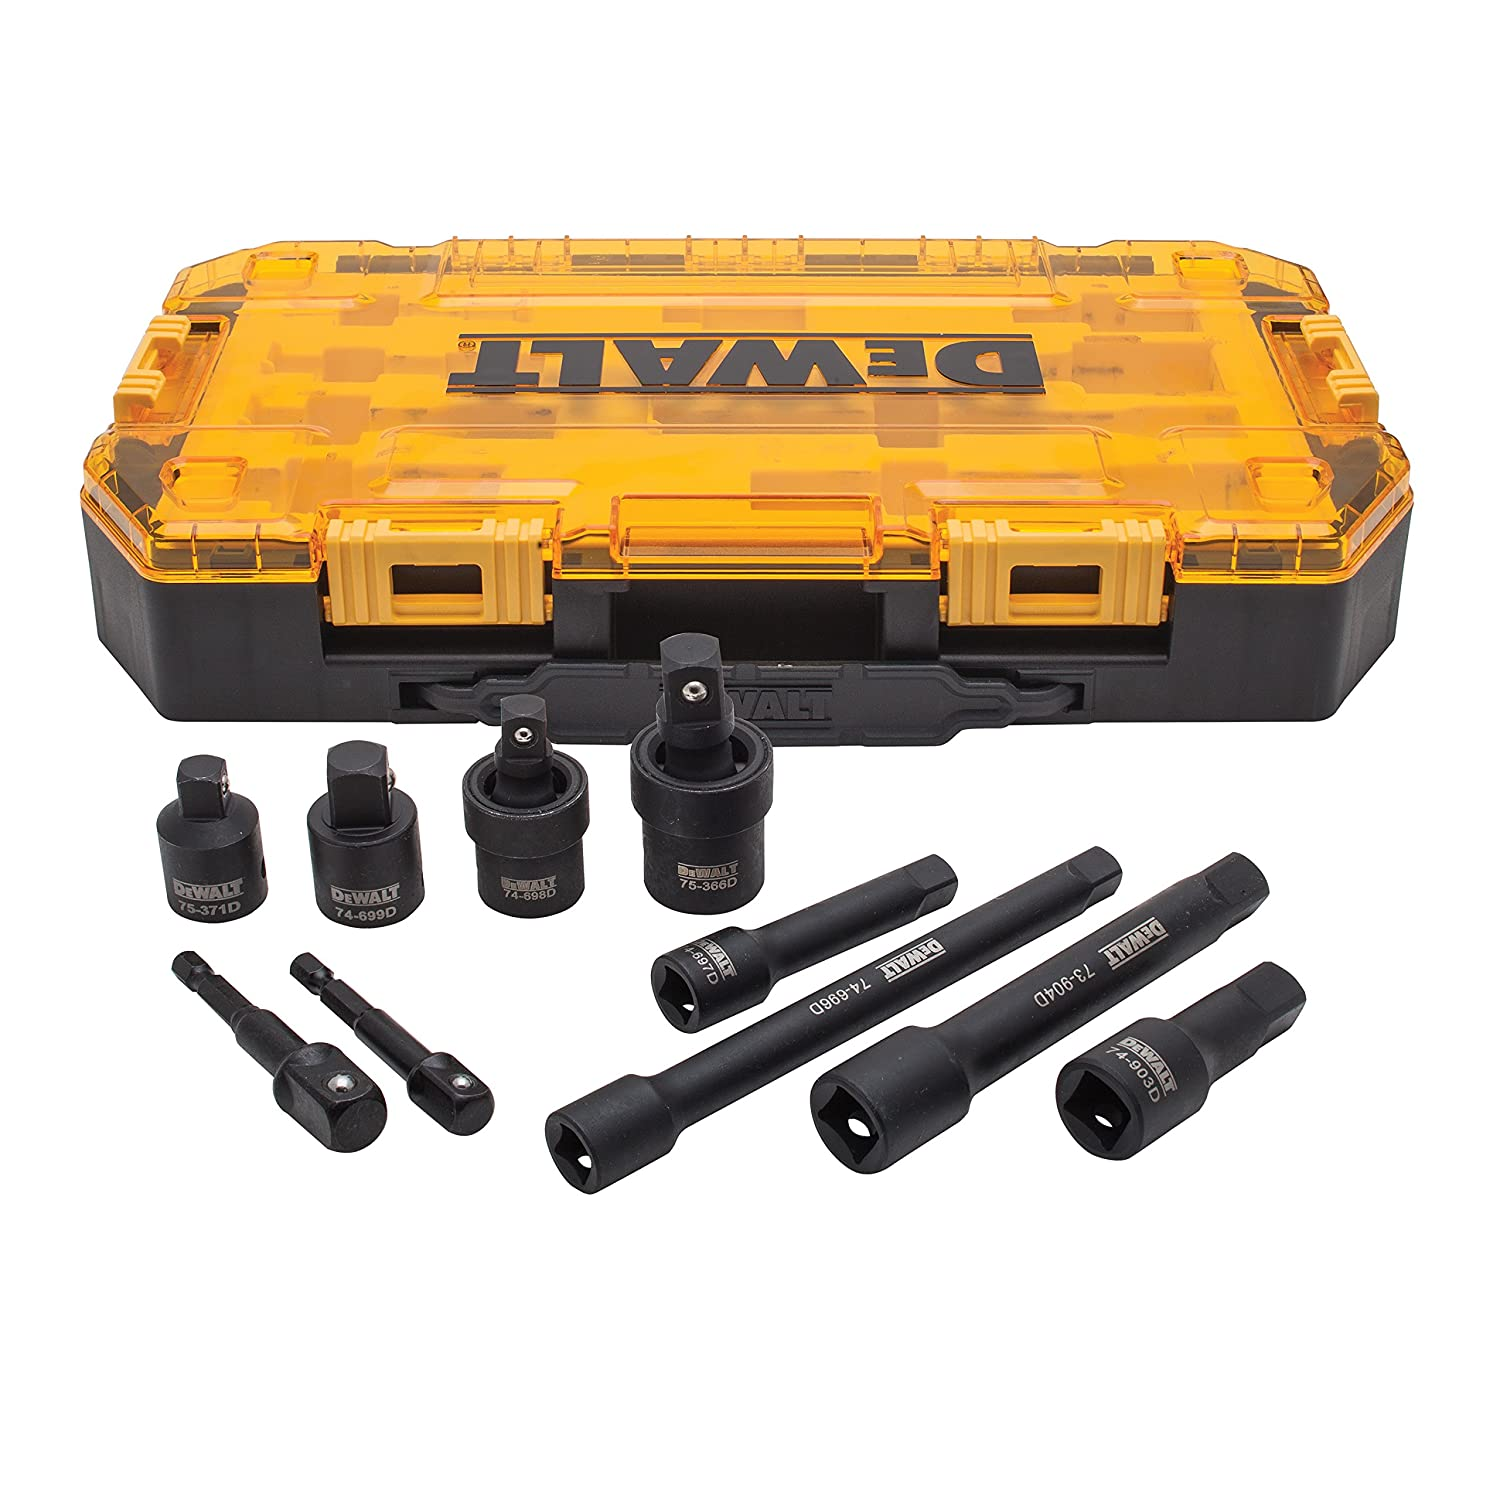 "DEWALT Impact Driver Socket Adapter Set, 10-Piece 3/8"" & 1/2"" Drive Metric (DWMT74741)"